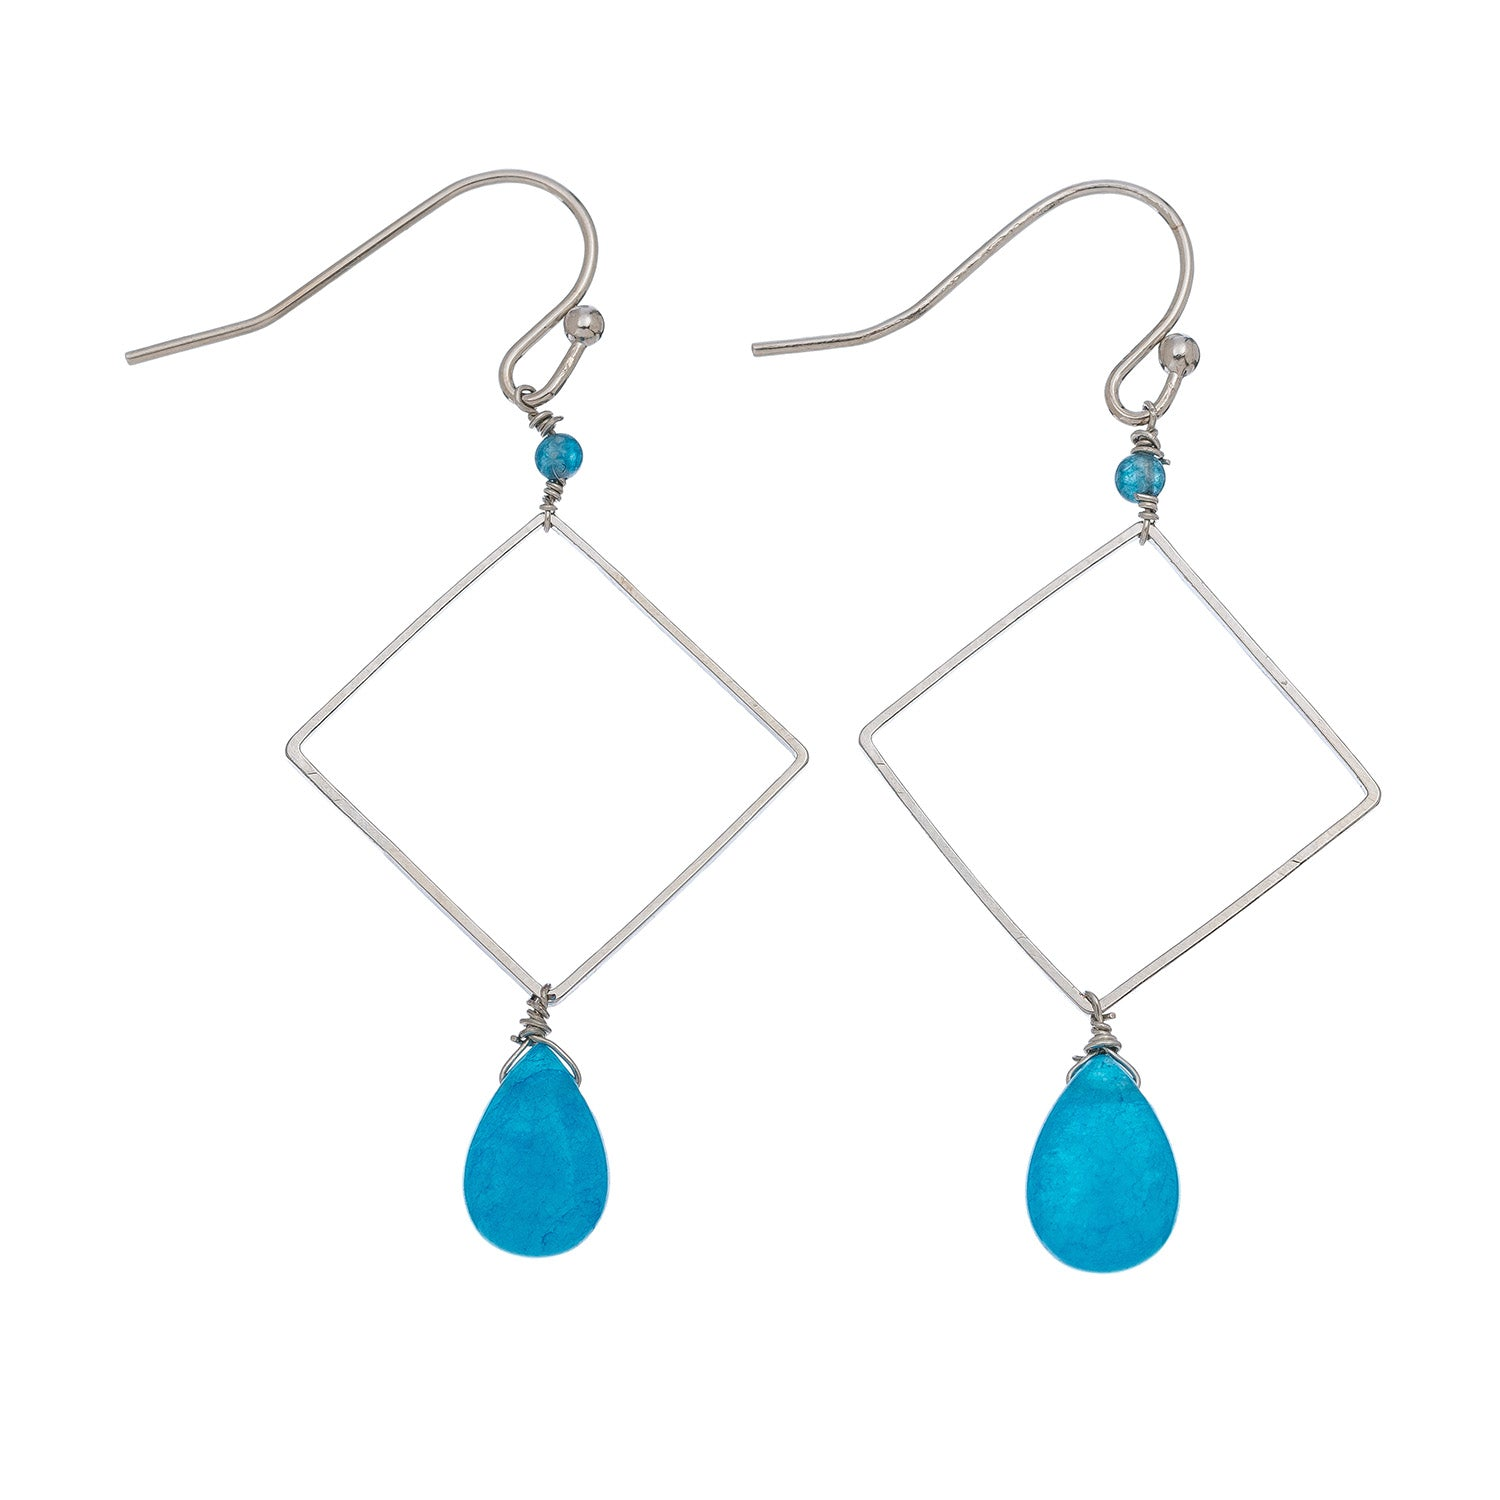 Square with Turquoise Drop Earrings